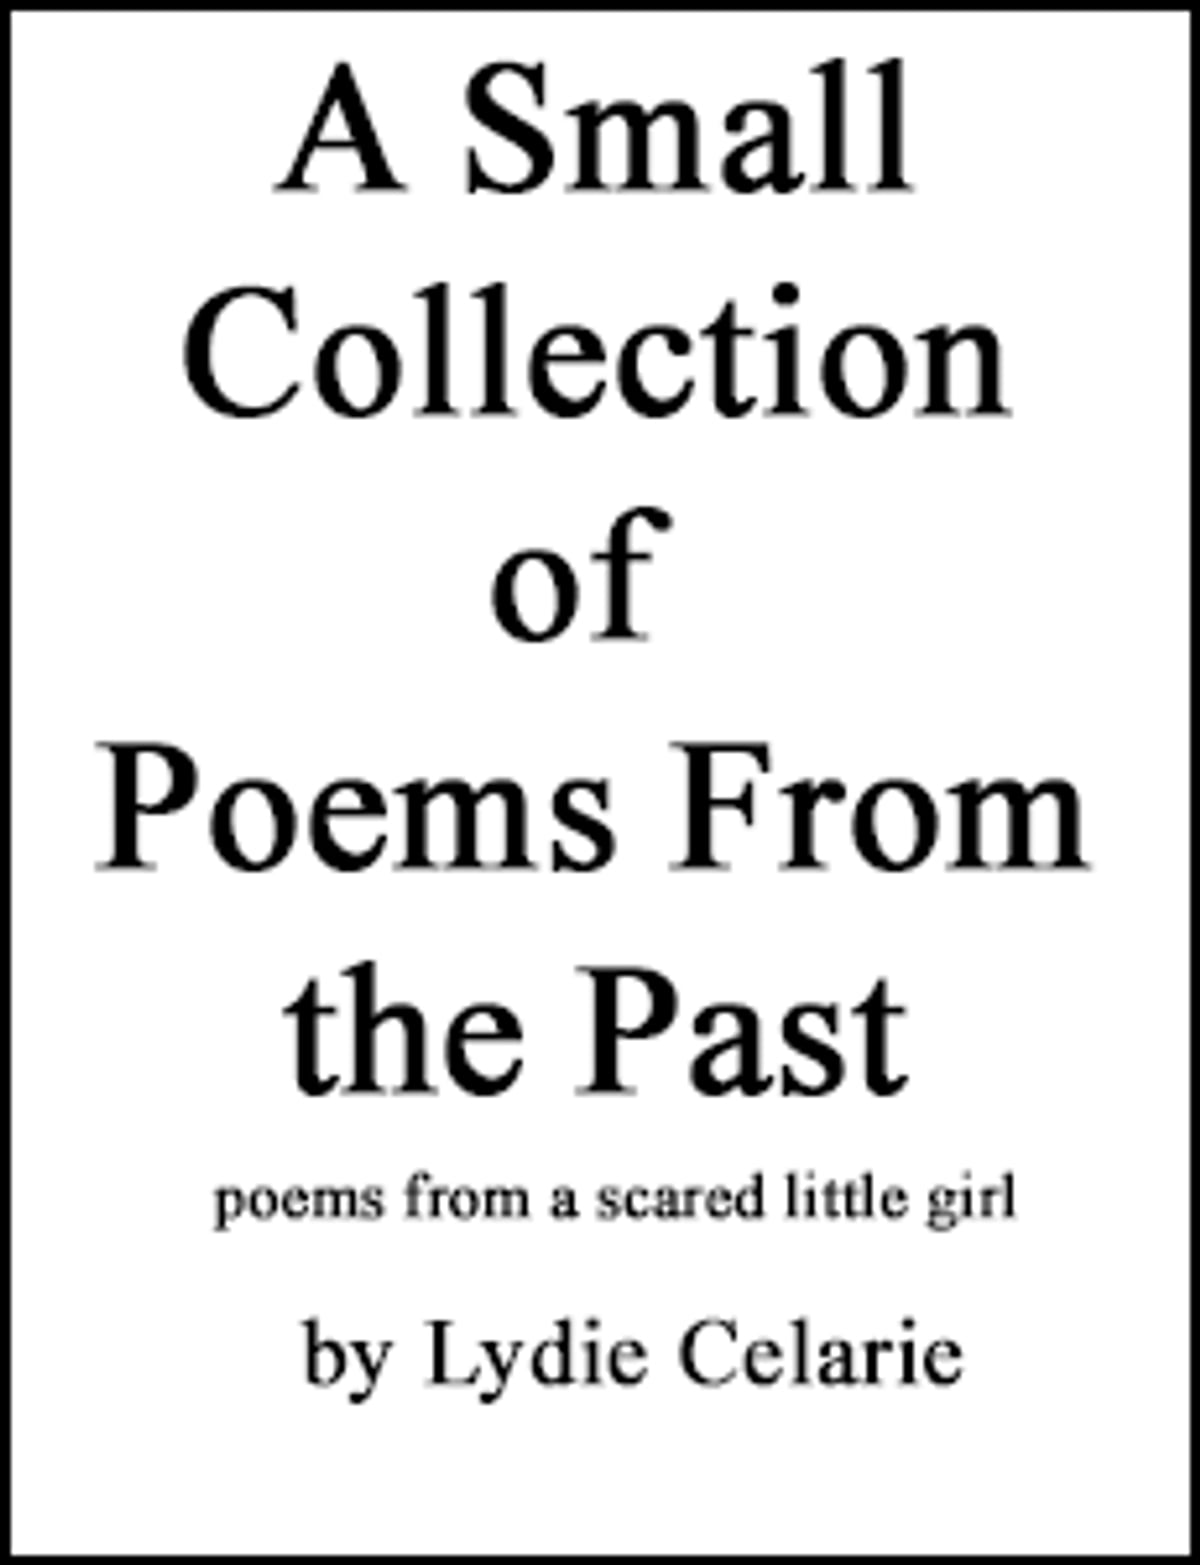 a small collection of poems from the past ebook by lydie celarie 1230000184697 rakuten kobo